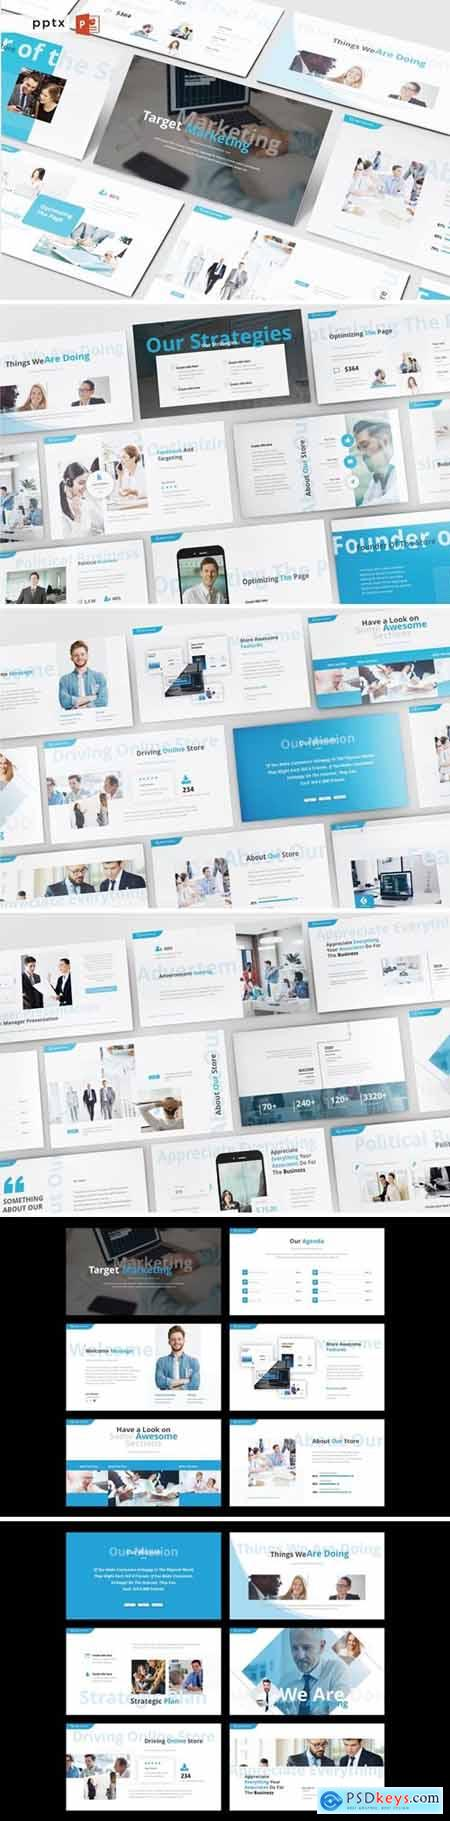 TARGET MARKETING Powerpoint, Keynote and Google Slides Templates